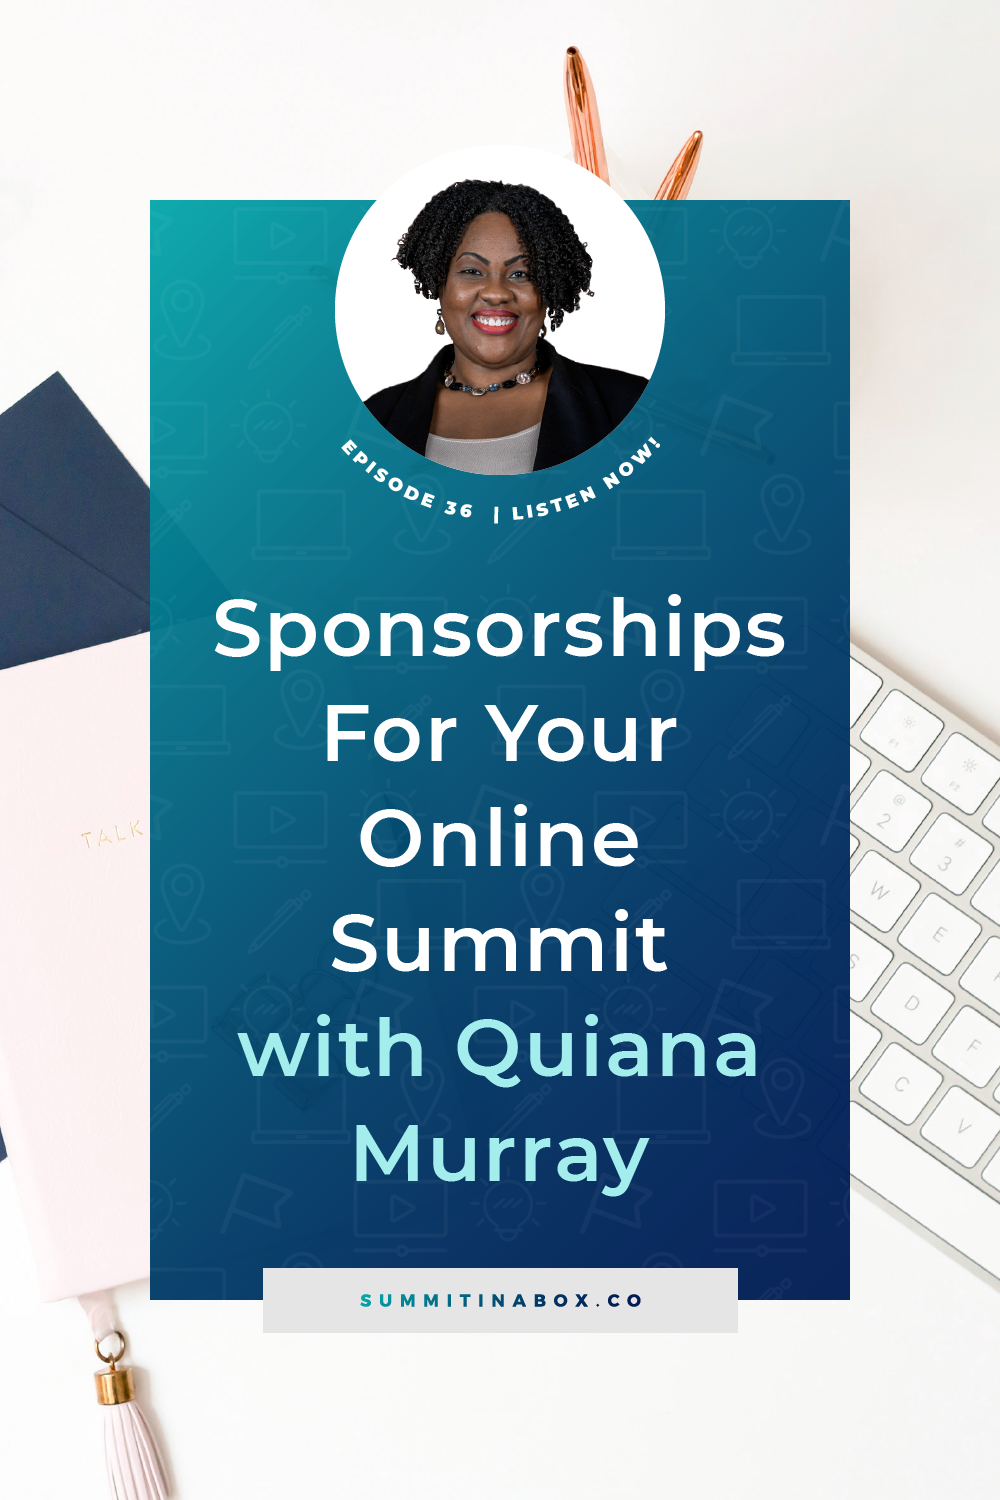 Let's cover the basics of virtual summit sponsorships including whether you should have them, how to pitch, and how much to charge.